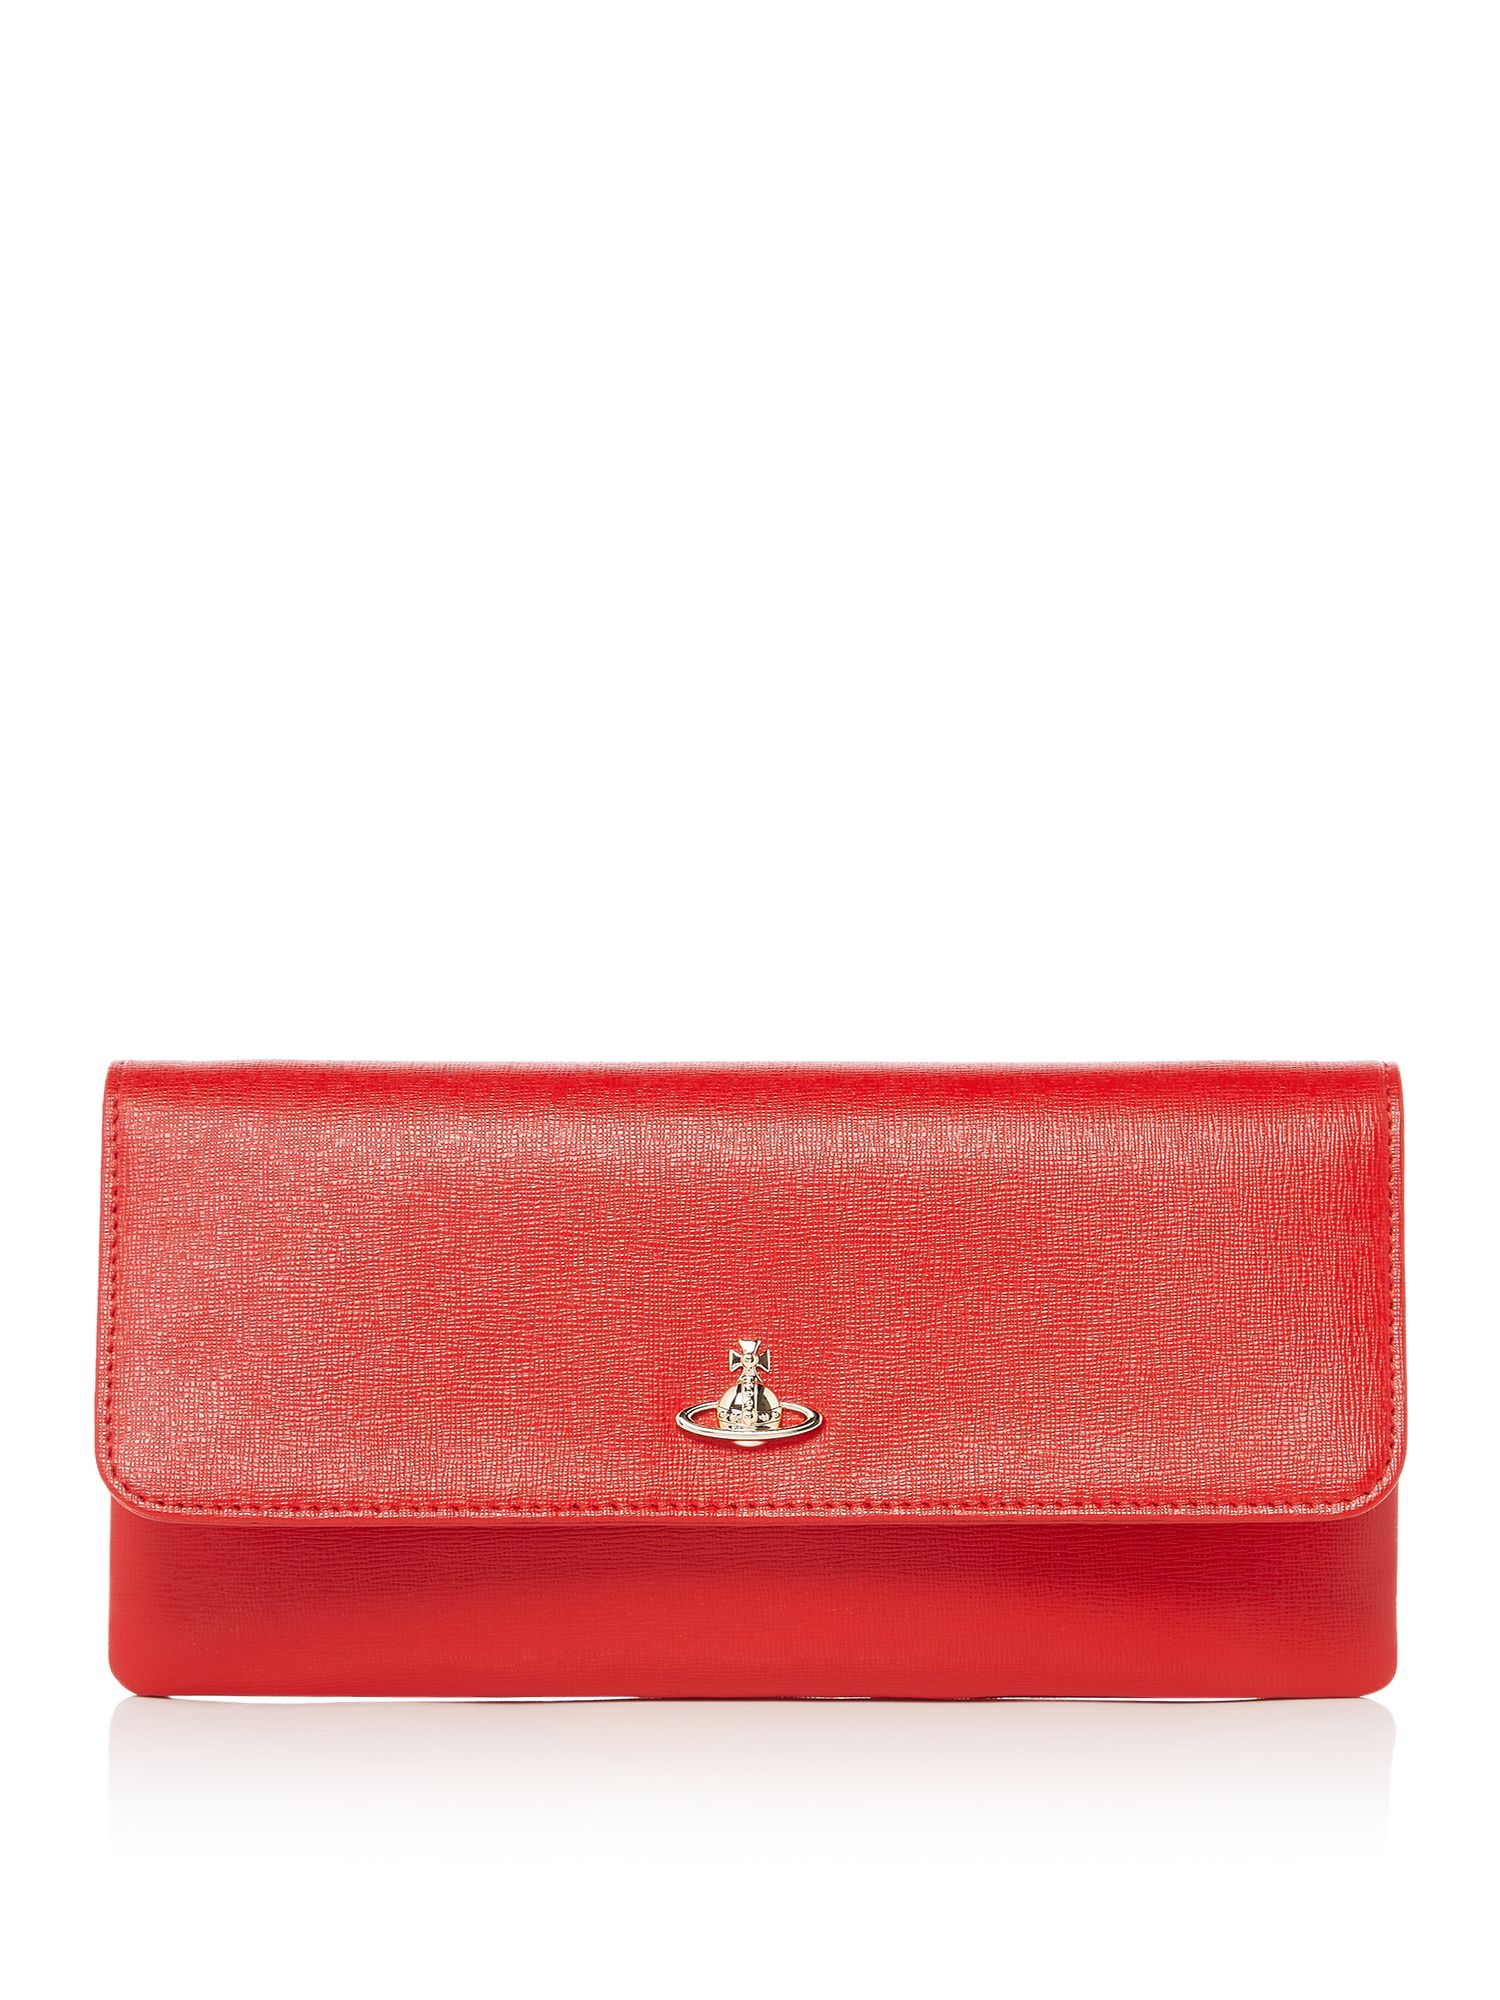 red clutch bag vivienne westwood saffiano chain clutch bag ... ocsbqpk